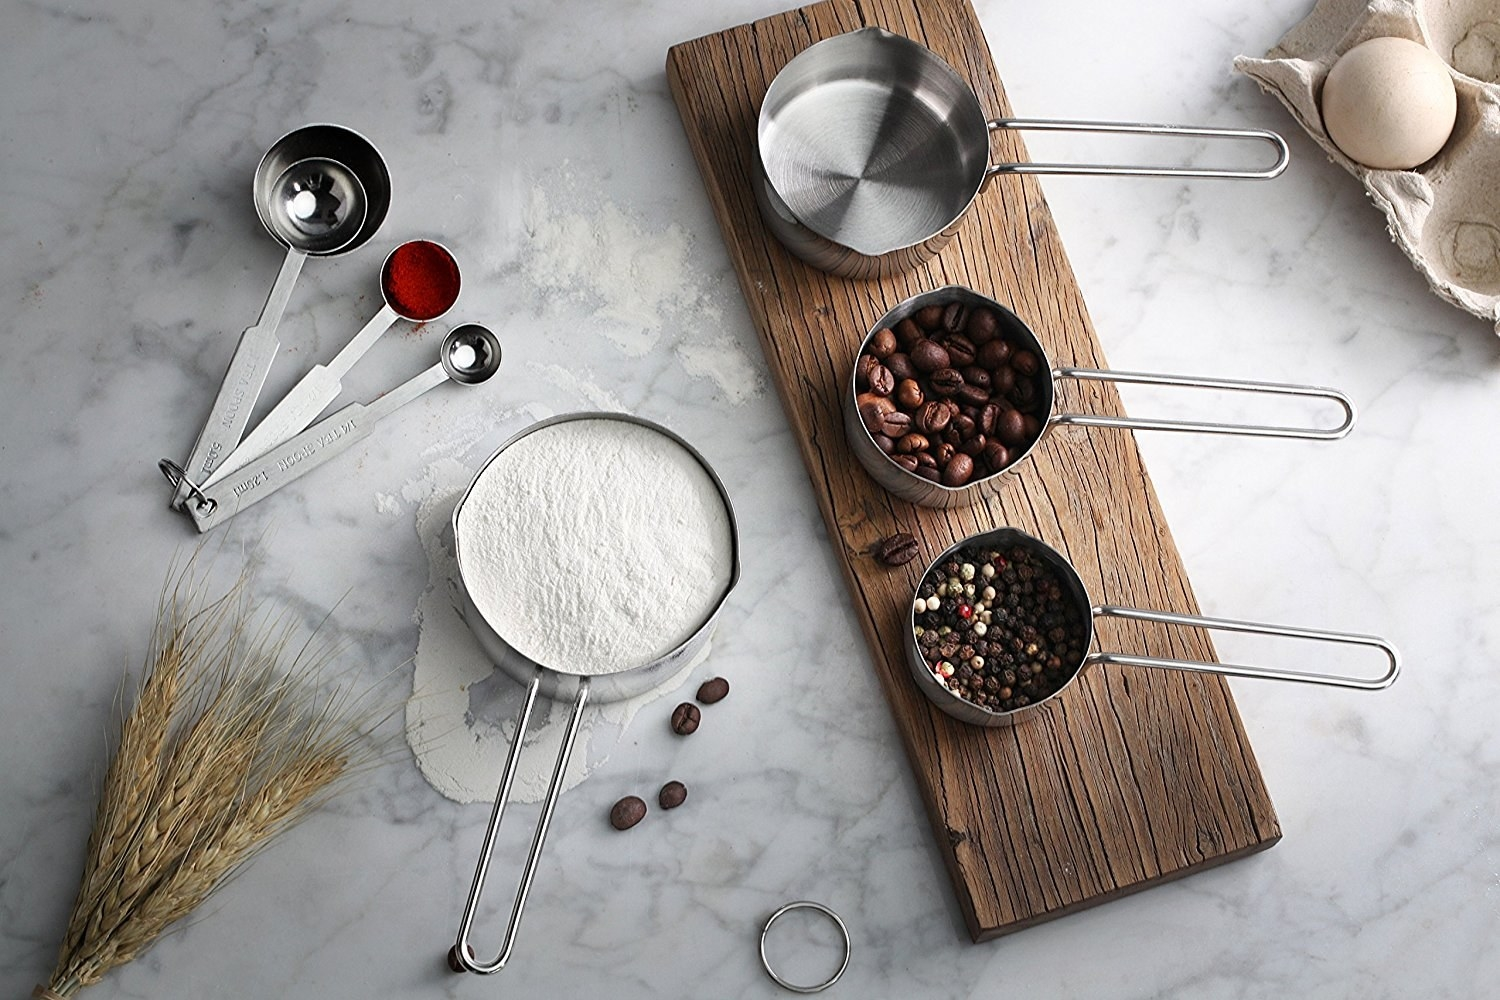 A set of stainless steel measuring cups filled with baking ingredients